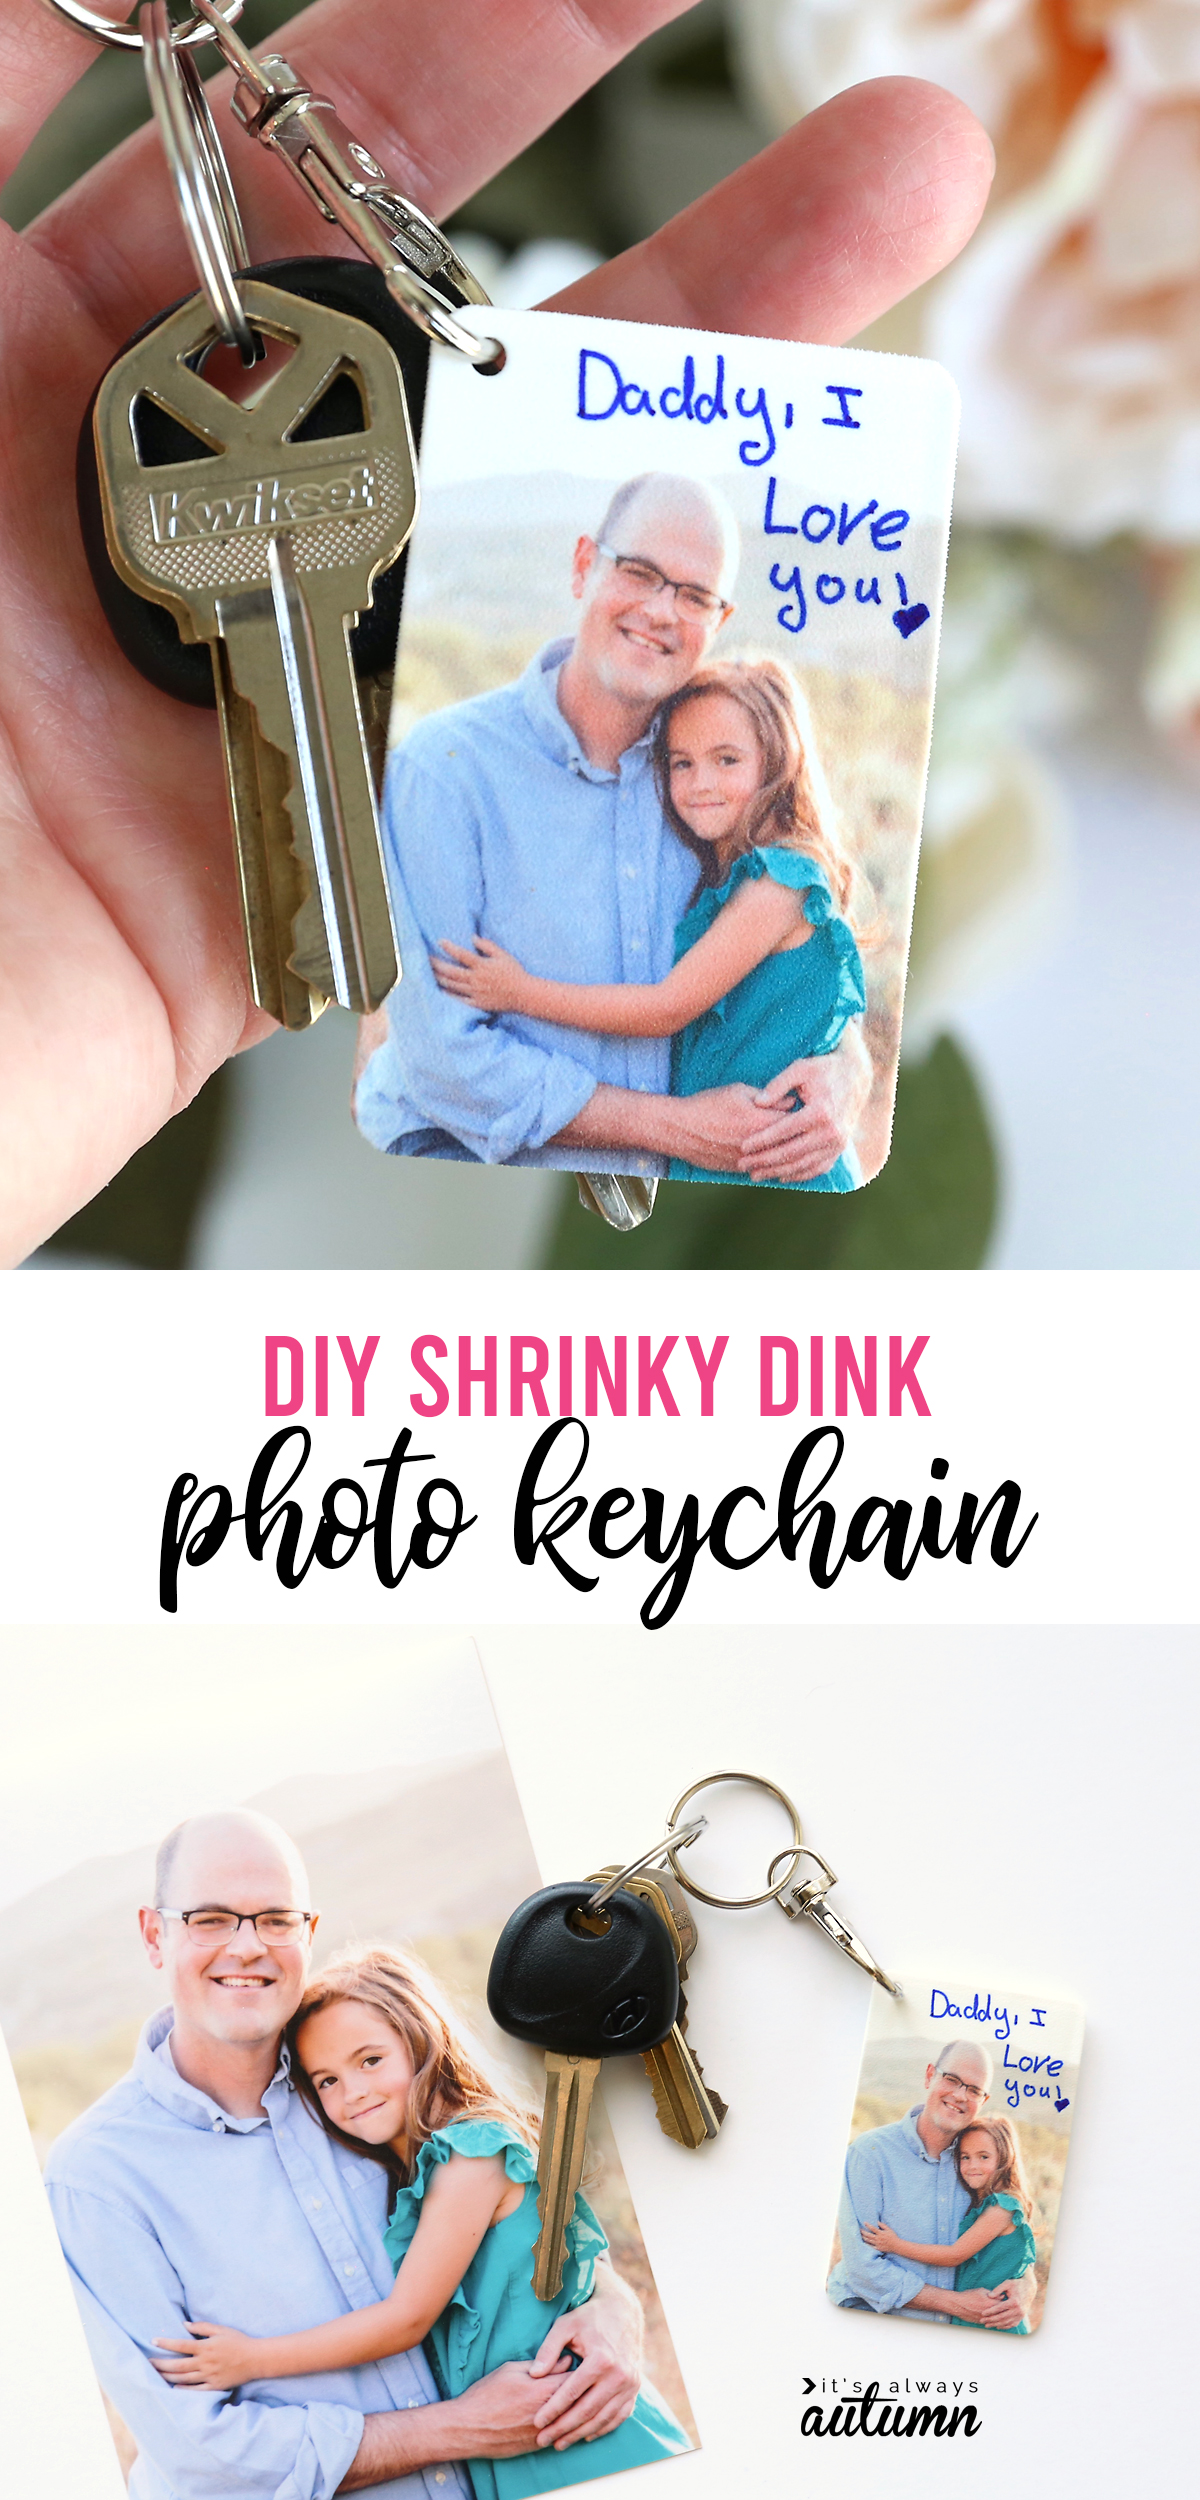 DIY Shrinky Dink photo keychain; hand holding keychain with picture of a girl and her dad on it